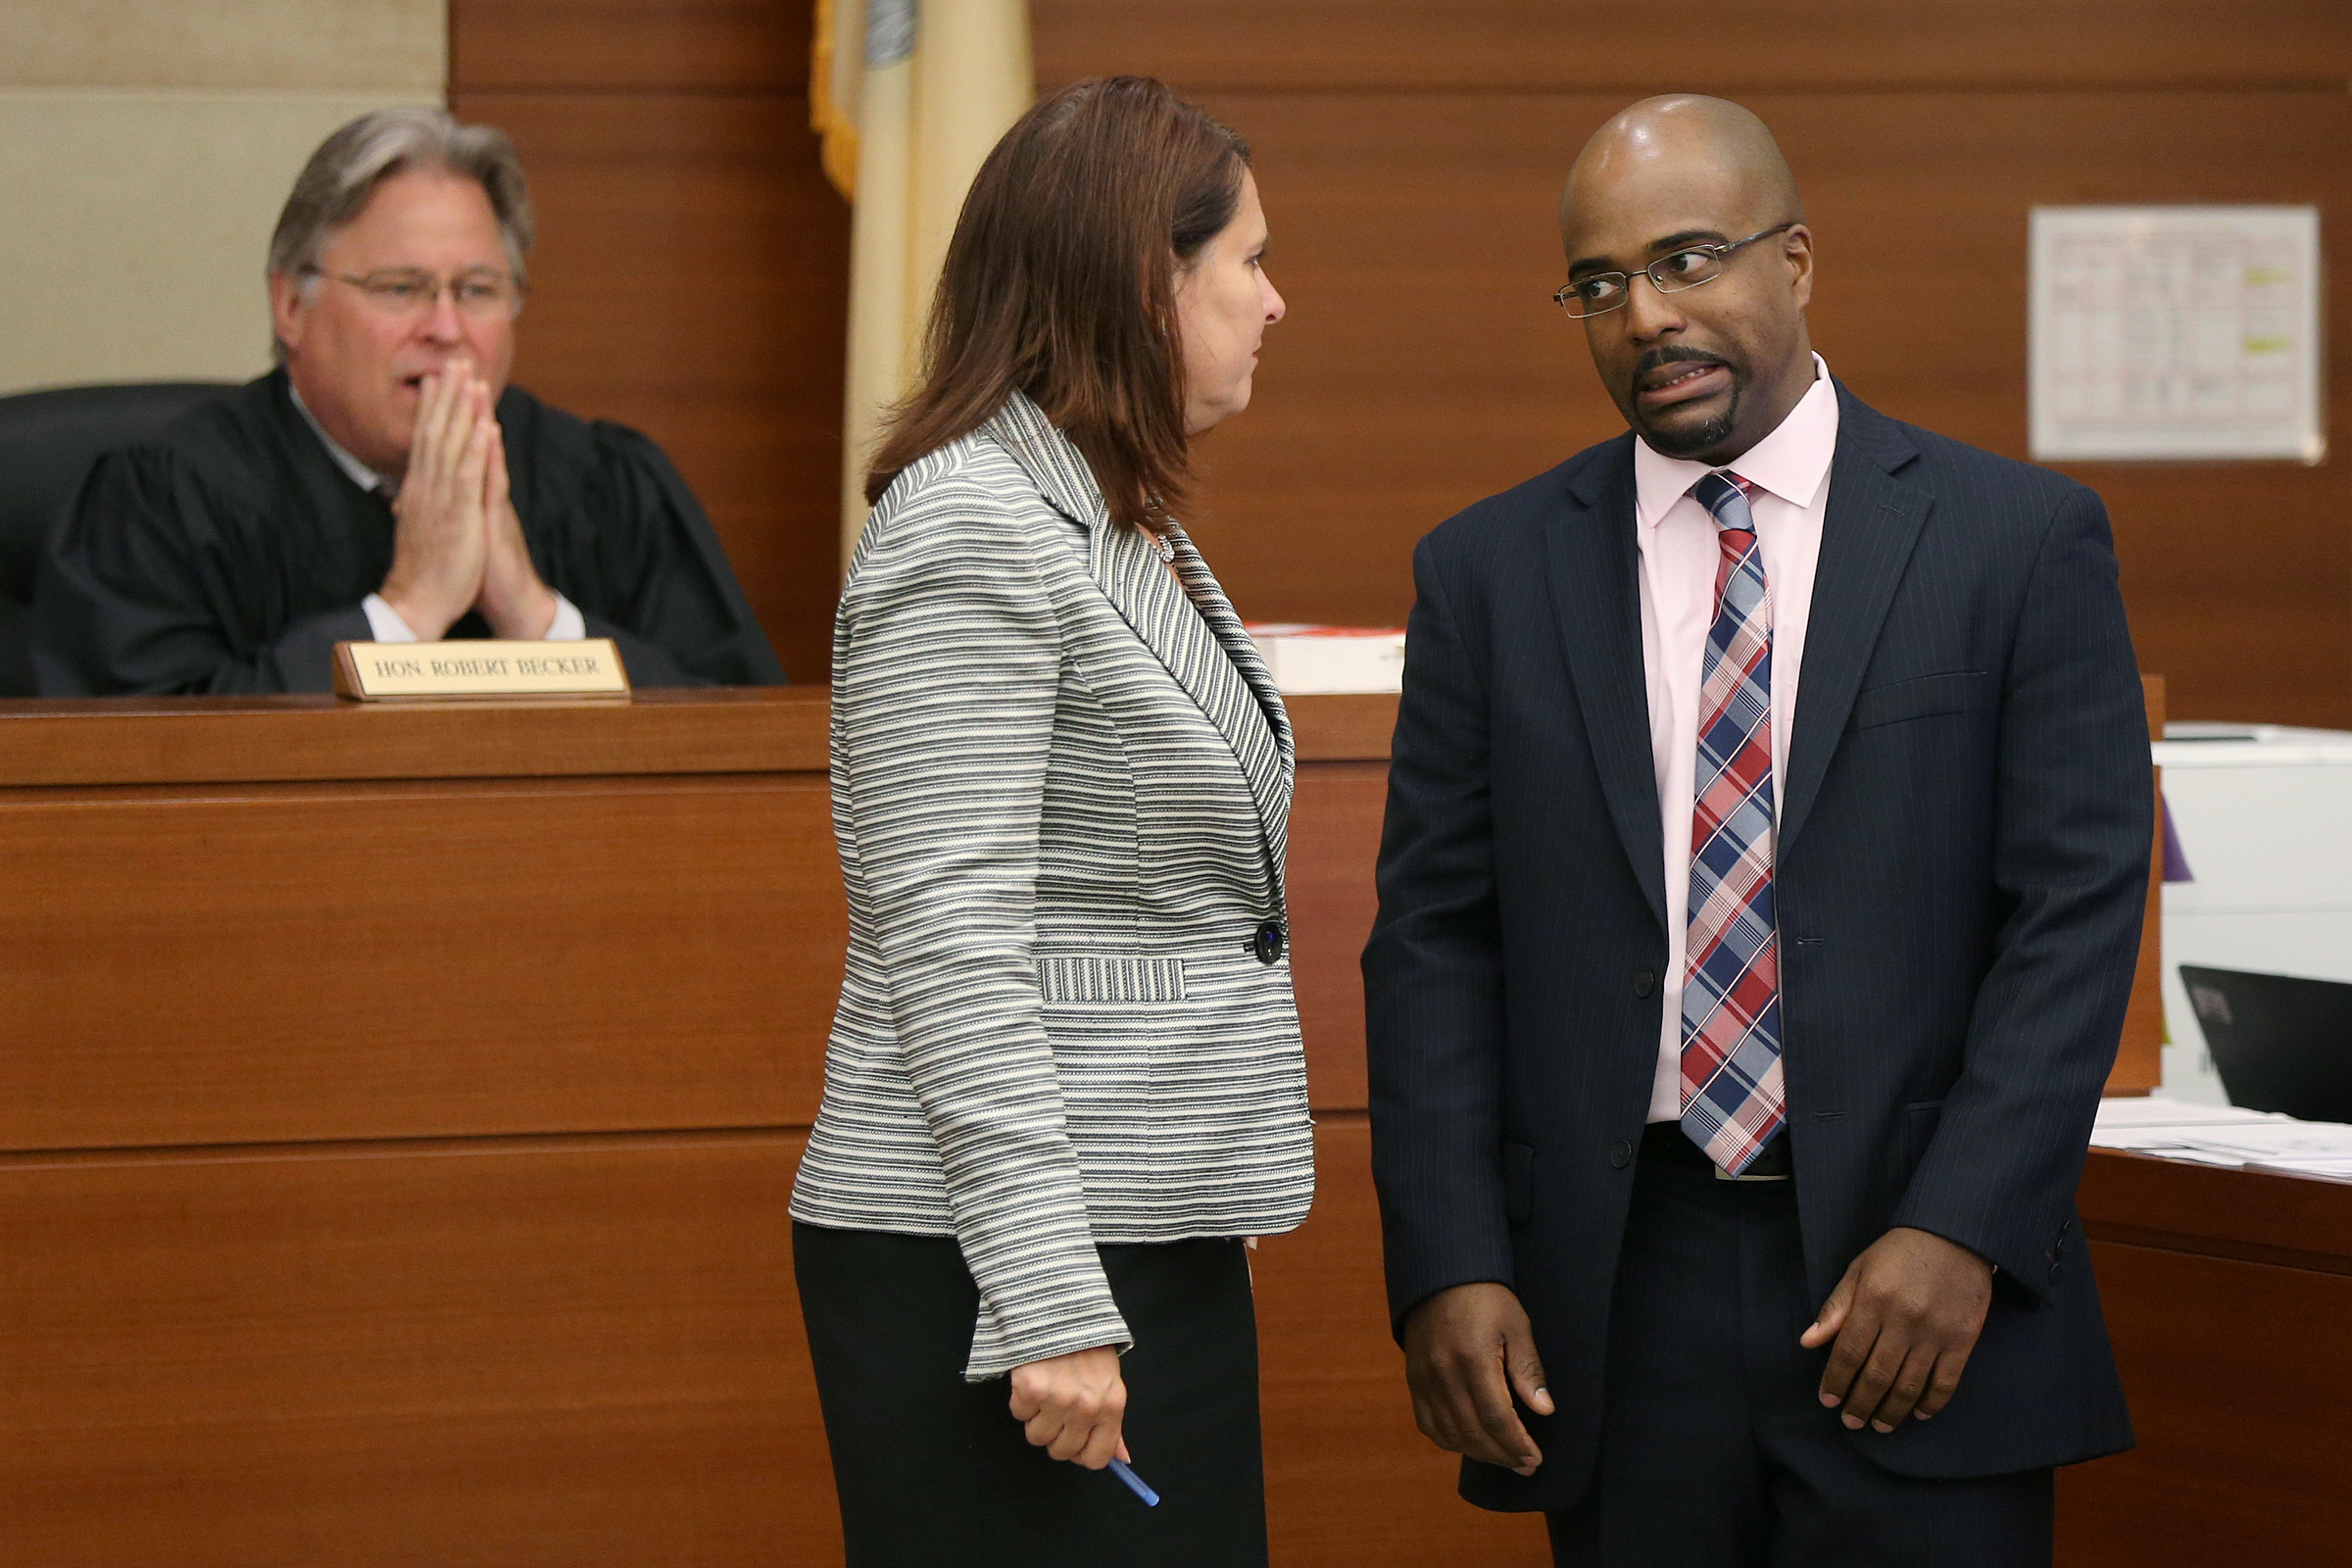 Defense attorney Julius Hughes, right, talks with assistant prosecutor Dianna Reed-Rolando, center, in Judge Robert Becker´s courtroom before a Gloucester County Superior Court detention hearing in Woodbury, N.J., on Thursday, June 14, 2018. Barnes is accused of shoplifting from a Marshalls store in Deptford on Saturday, an incident that ended with a police officer fatally shooting LaShanda Anderson as the two allegedly attempted to flee in a car.